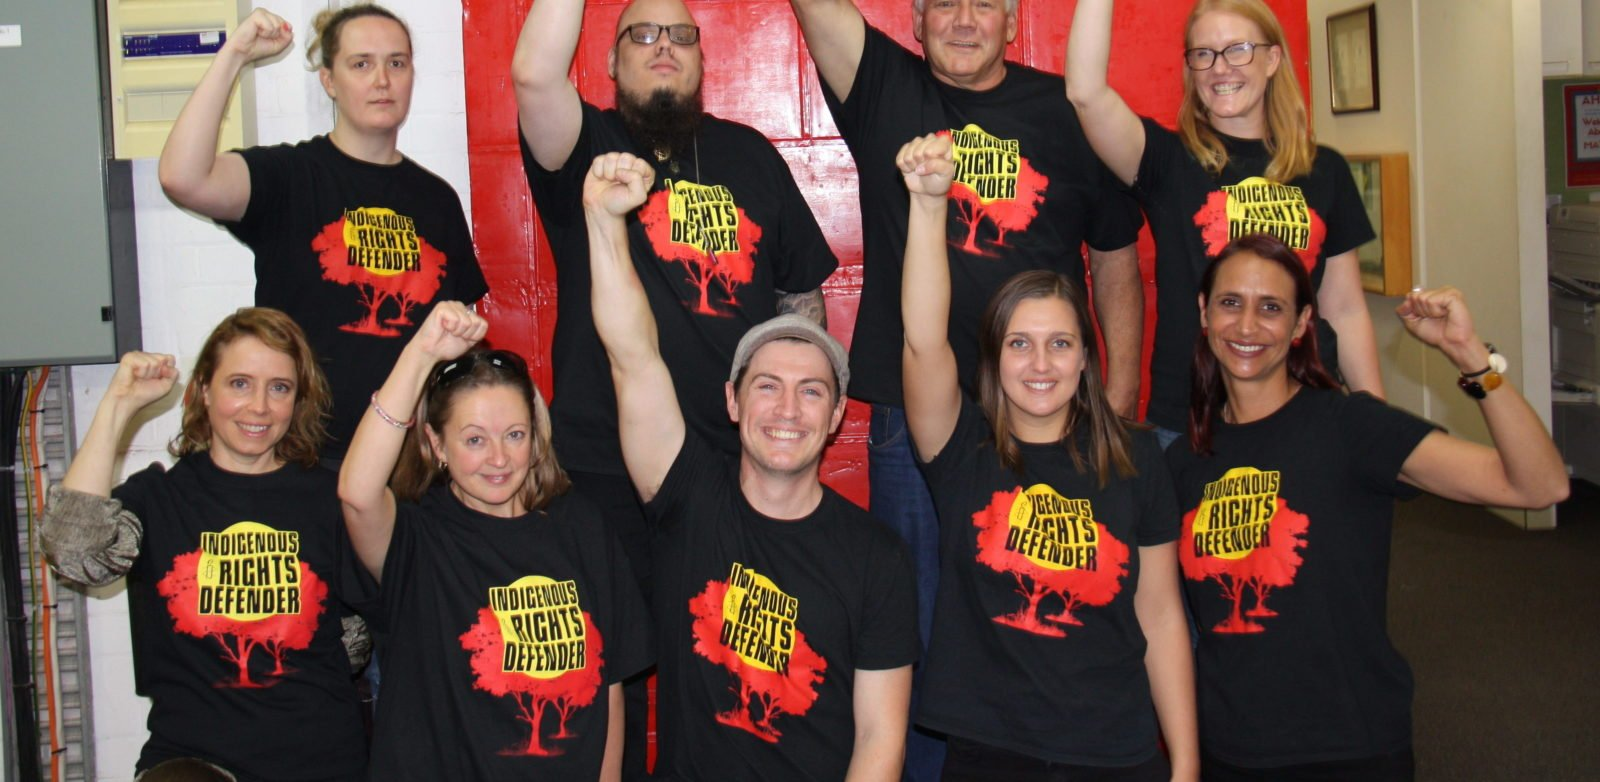 9 people with their fists held high with Indigenous Rights Defender on their t-shirts